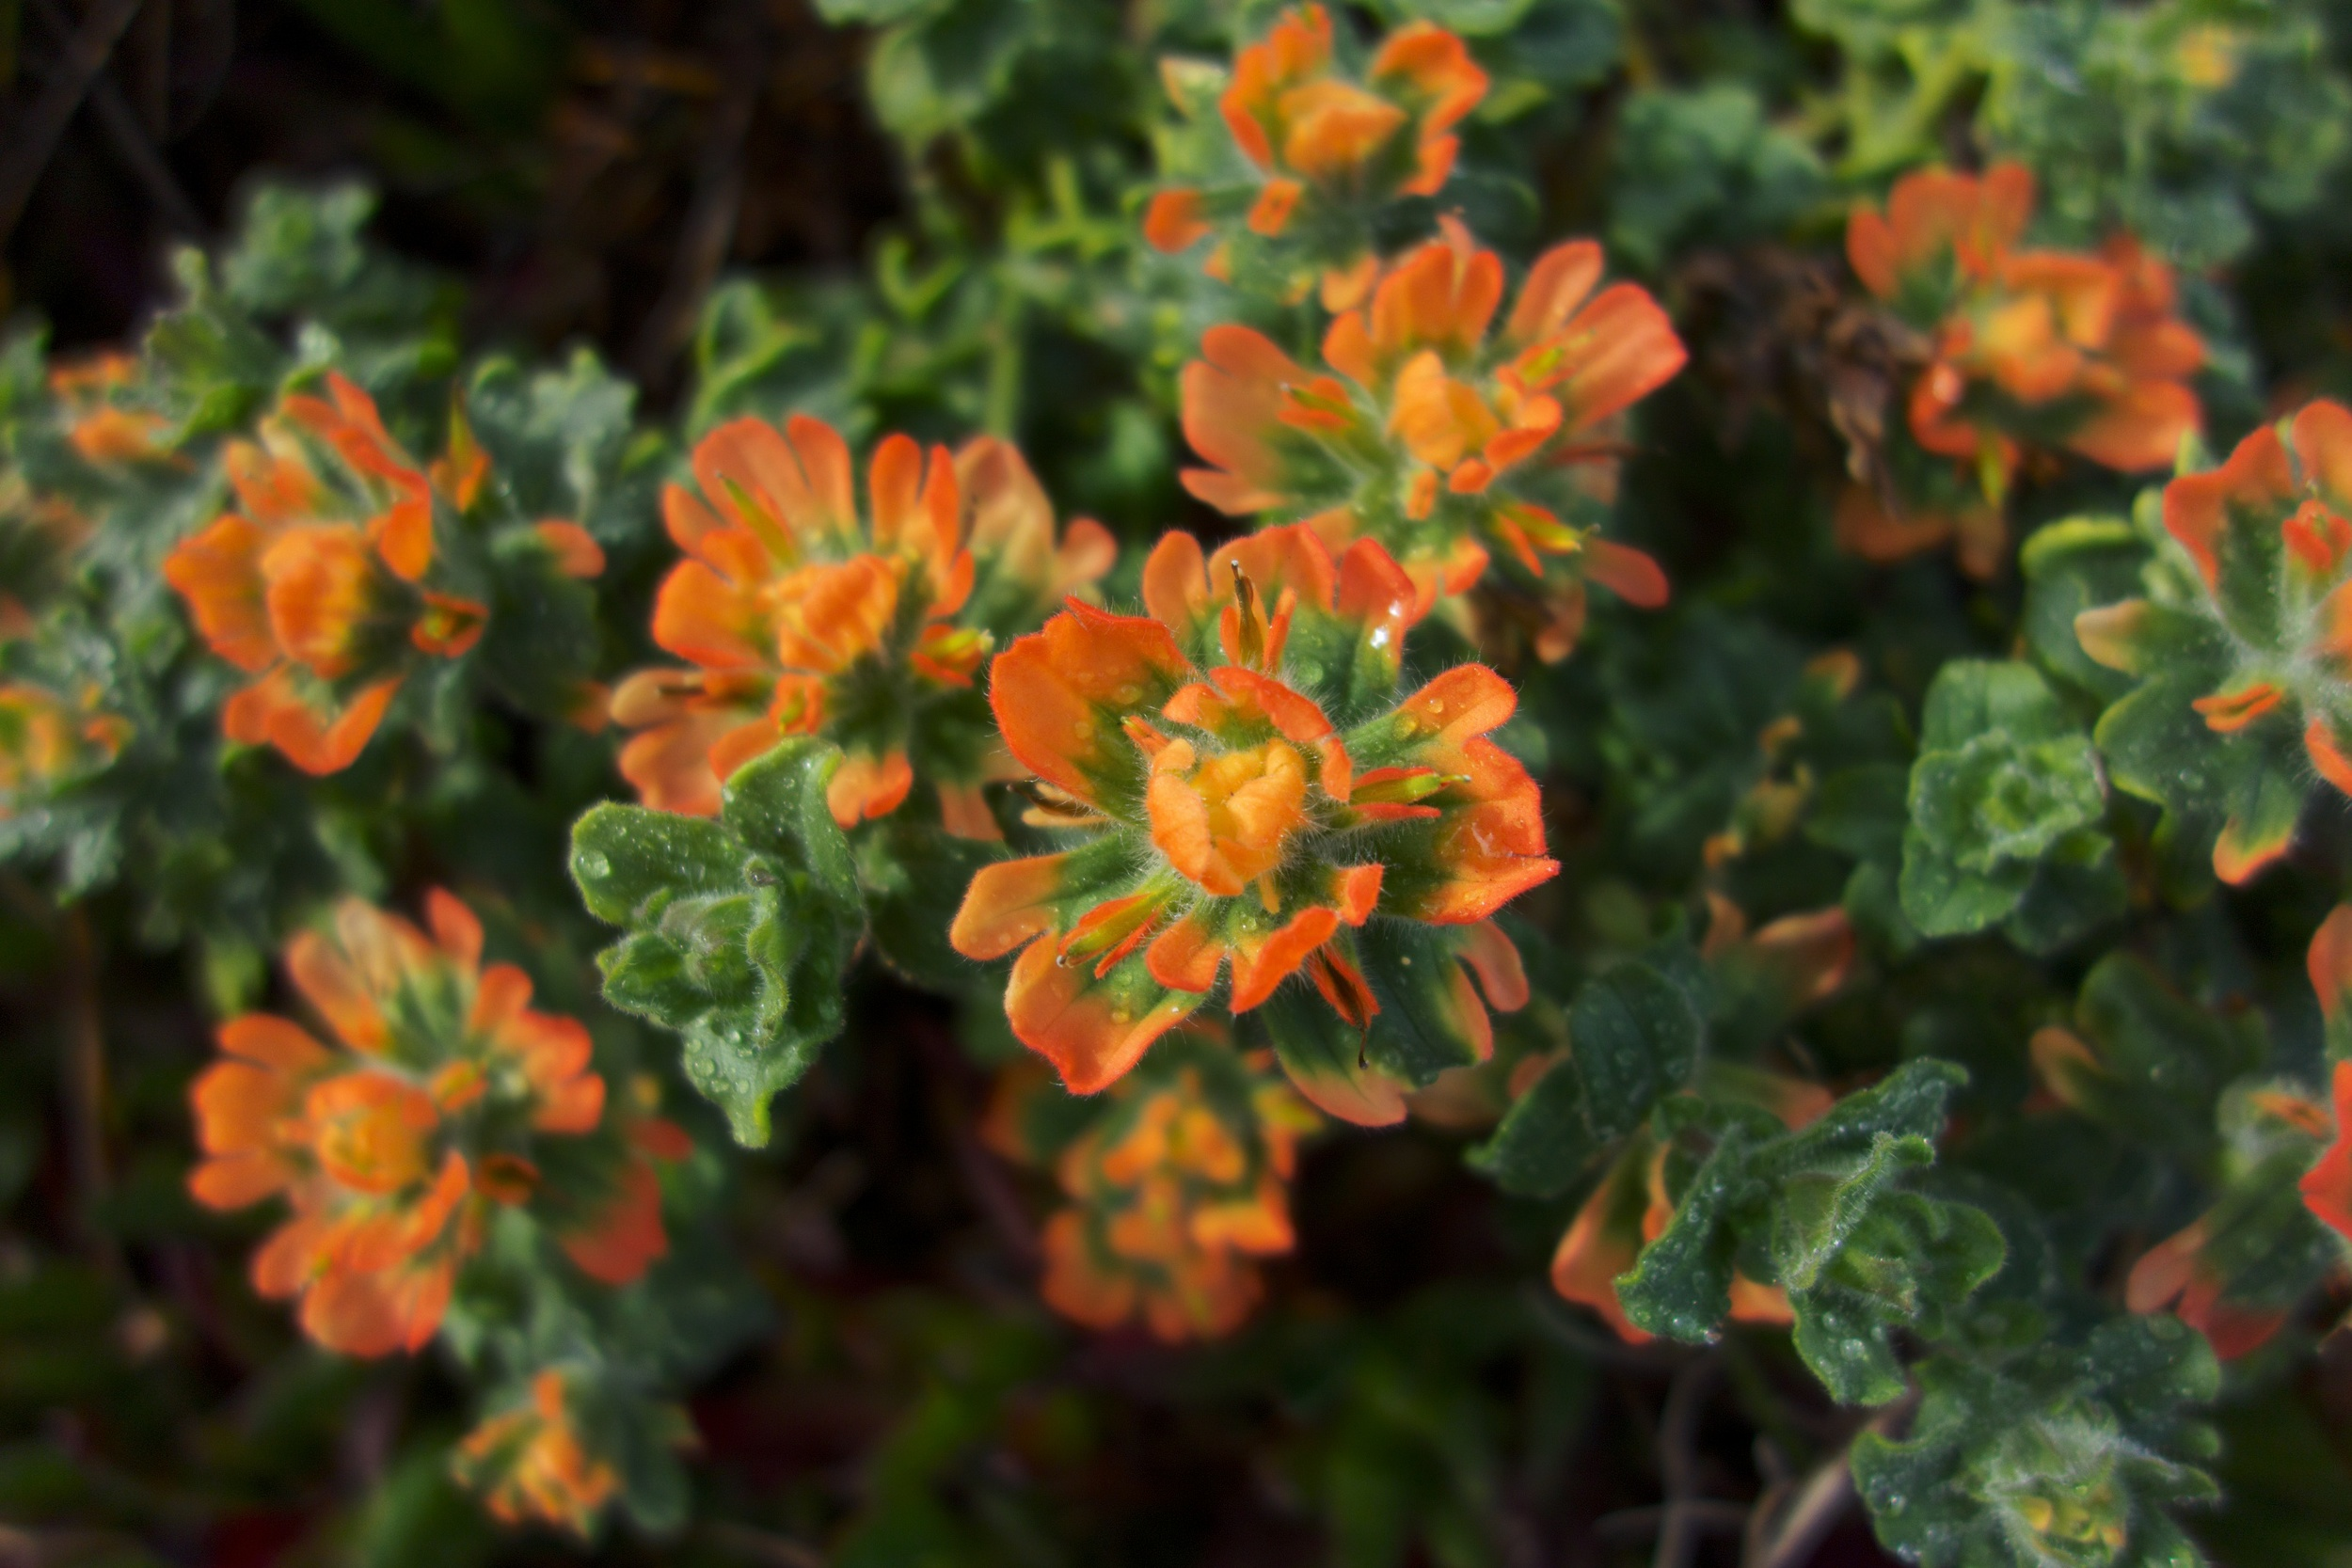 → Some of the most magical and vibrant succulents and ground cover exist on this Big Sur beach.